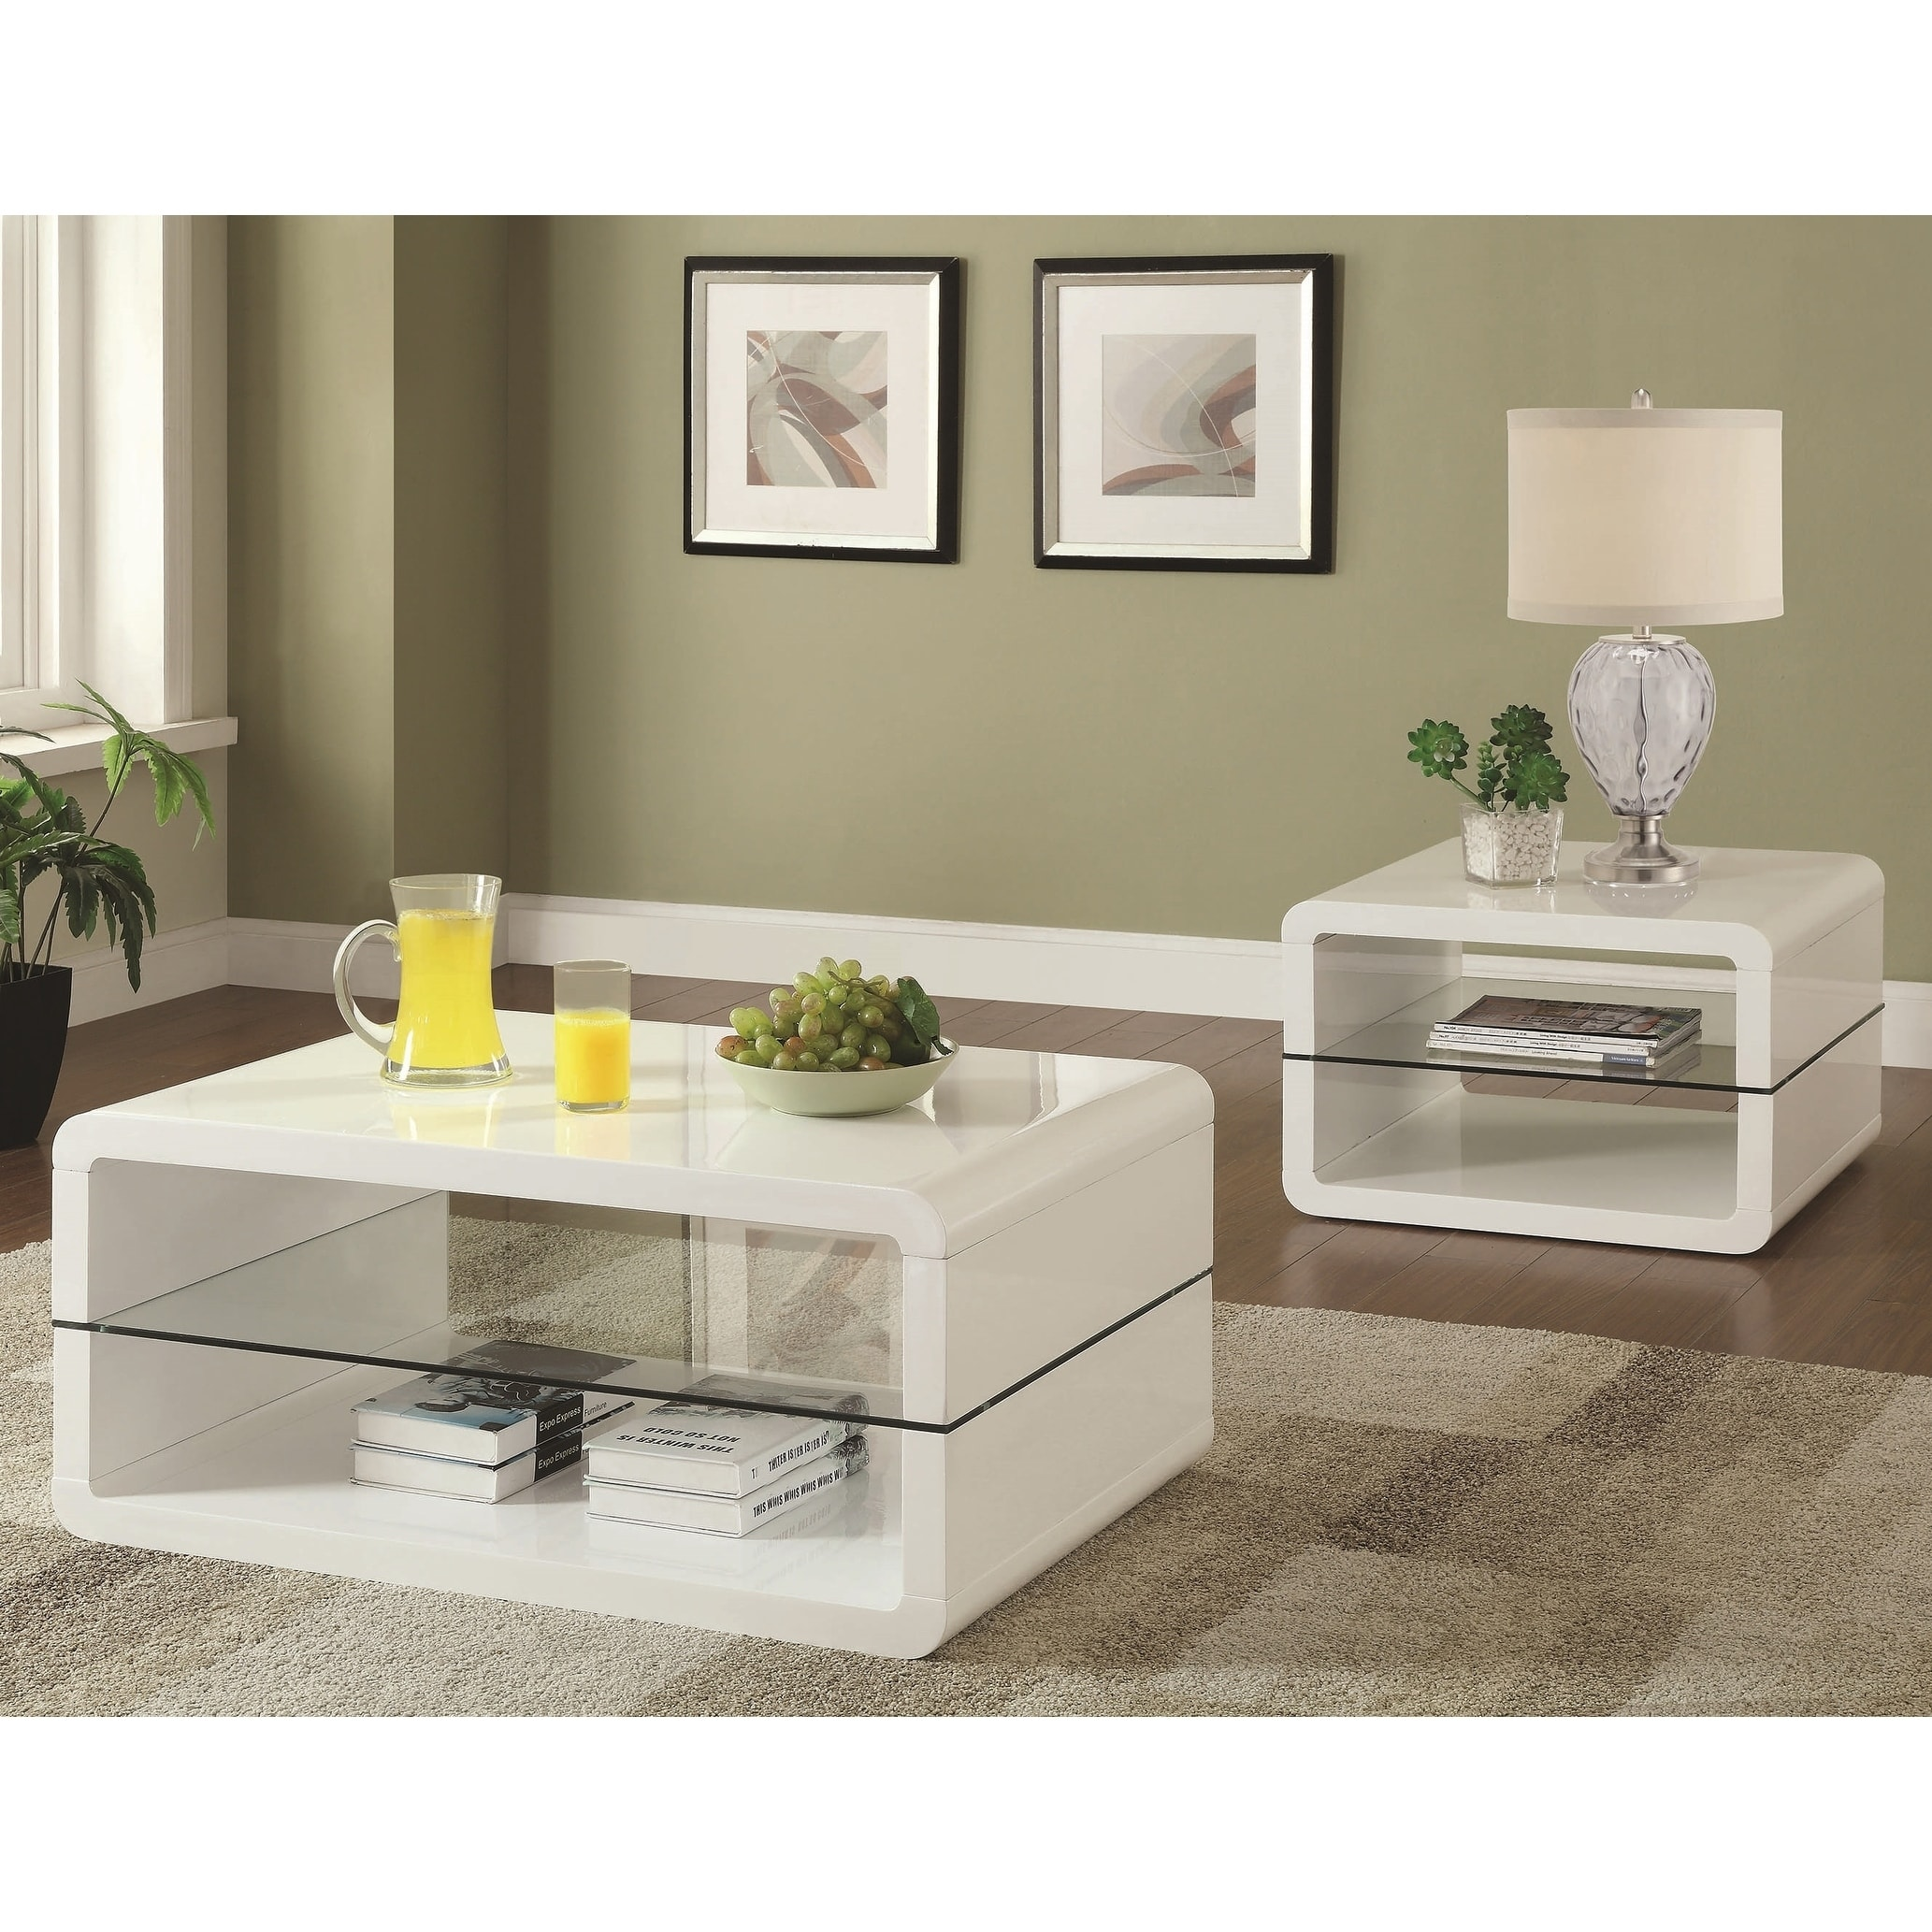 modern cube design living room accent table collection with glass shelf tables for free shipping today narrow behind sofa cordless standing lamp small oriental lamps placemats and